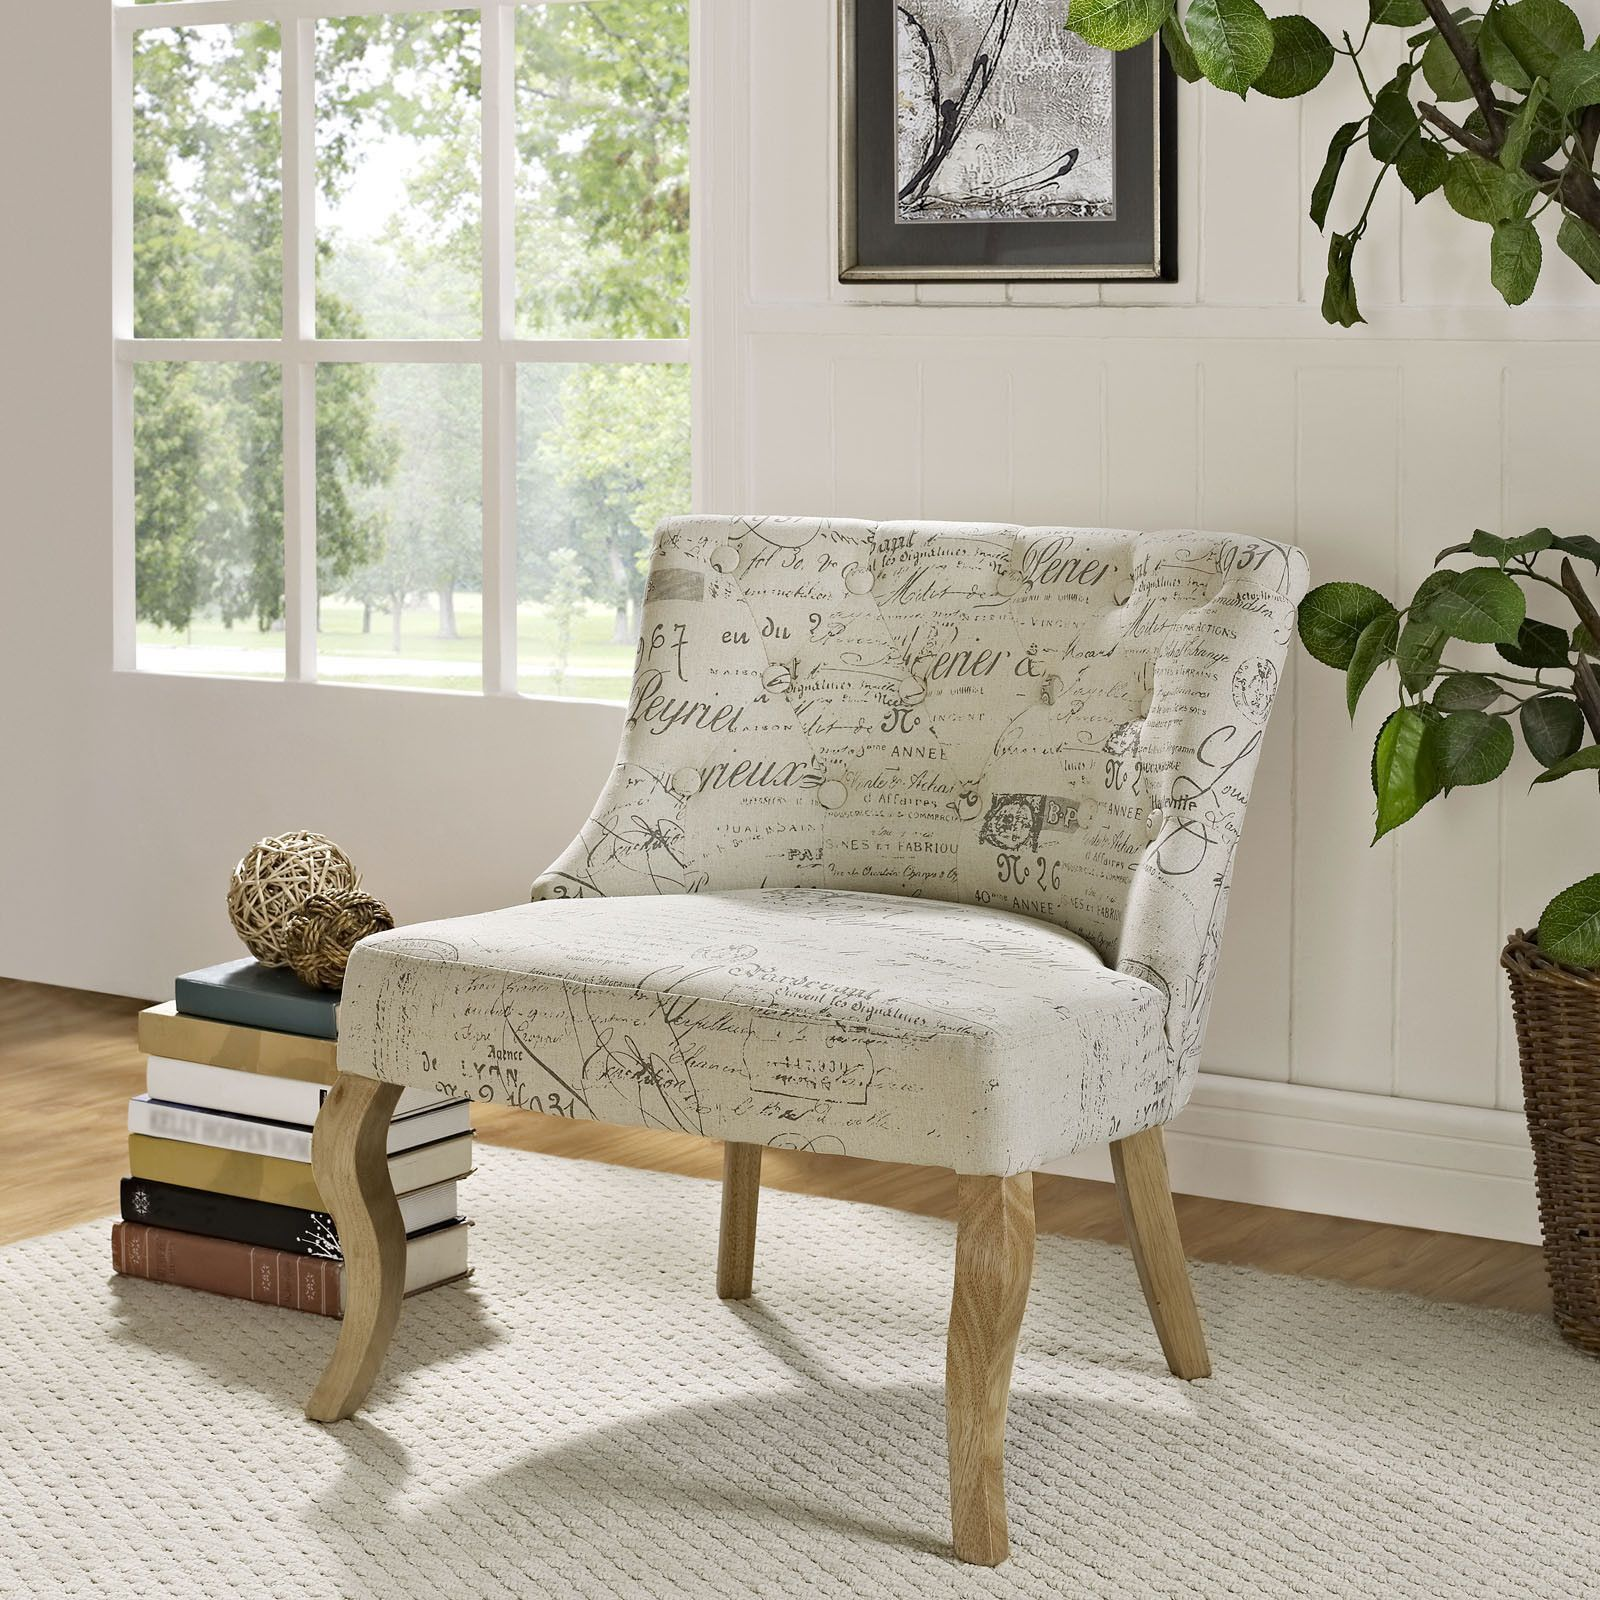 Ville Marie Fabric Armchair | Fabric armchairs, Living ...